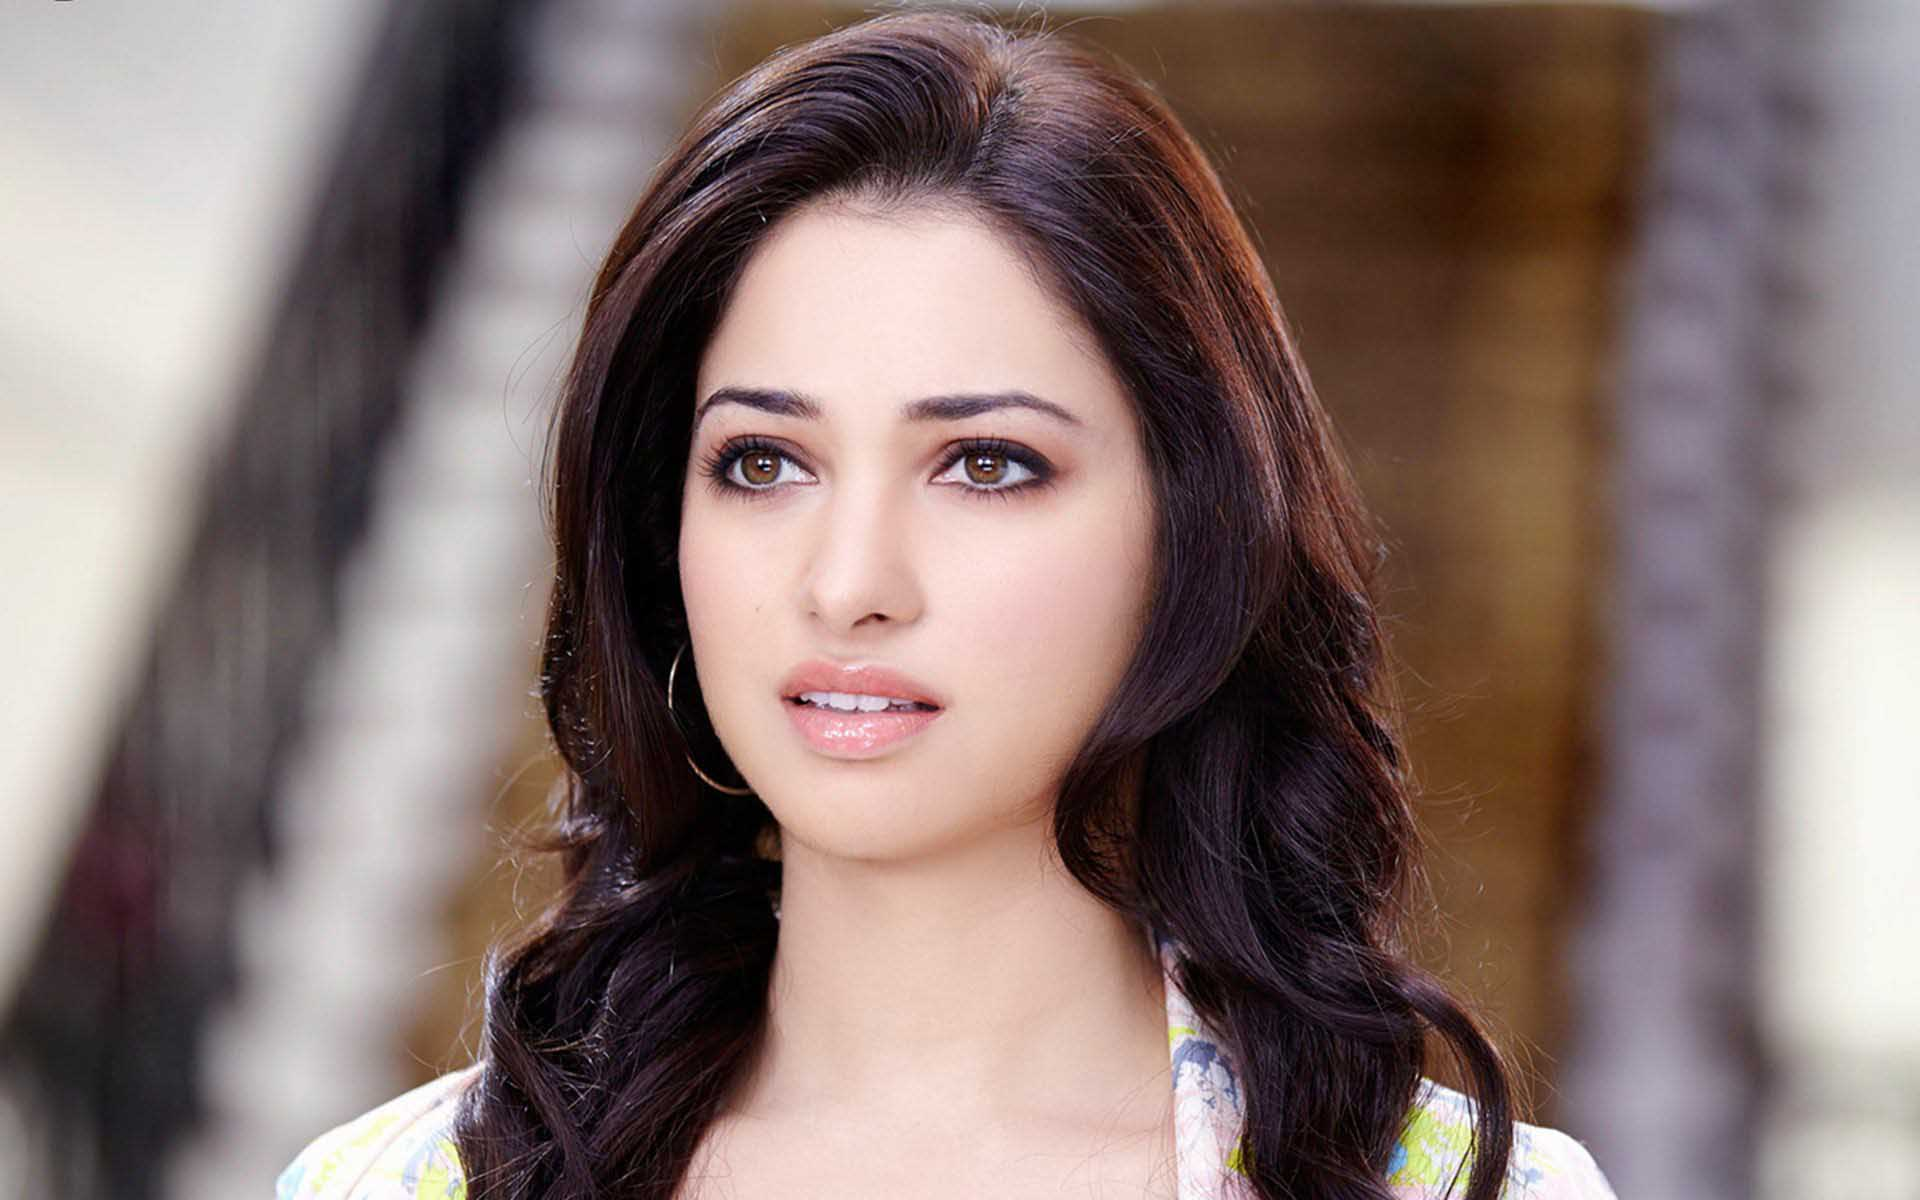 Tamanna Bhatia Hd Wallpapers Of High Quality Download